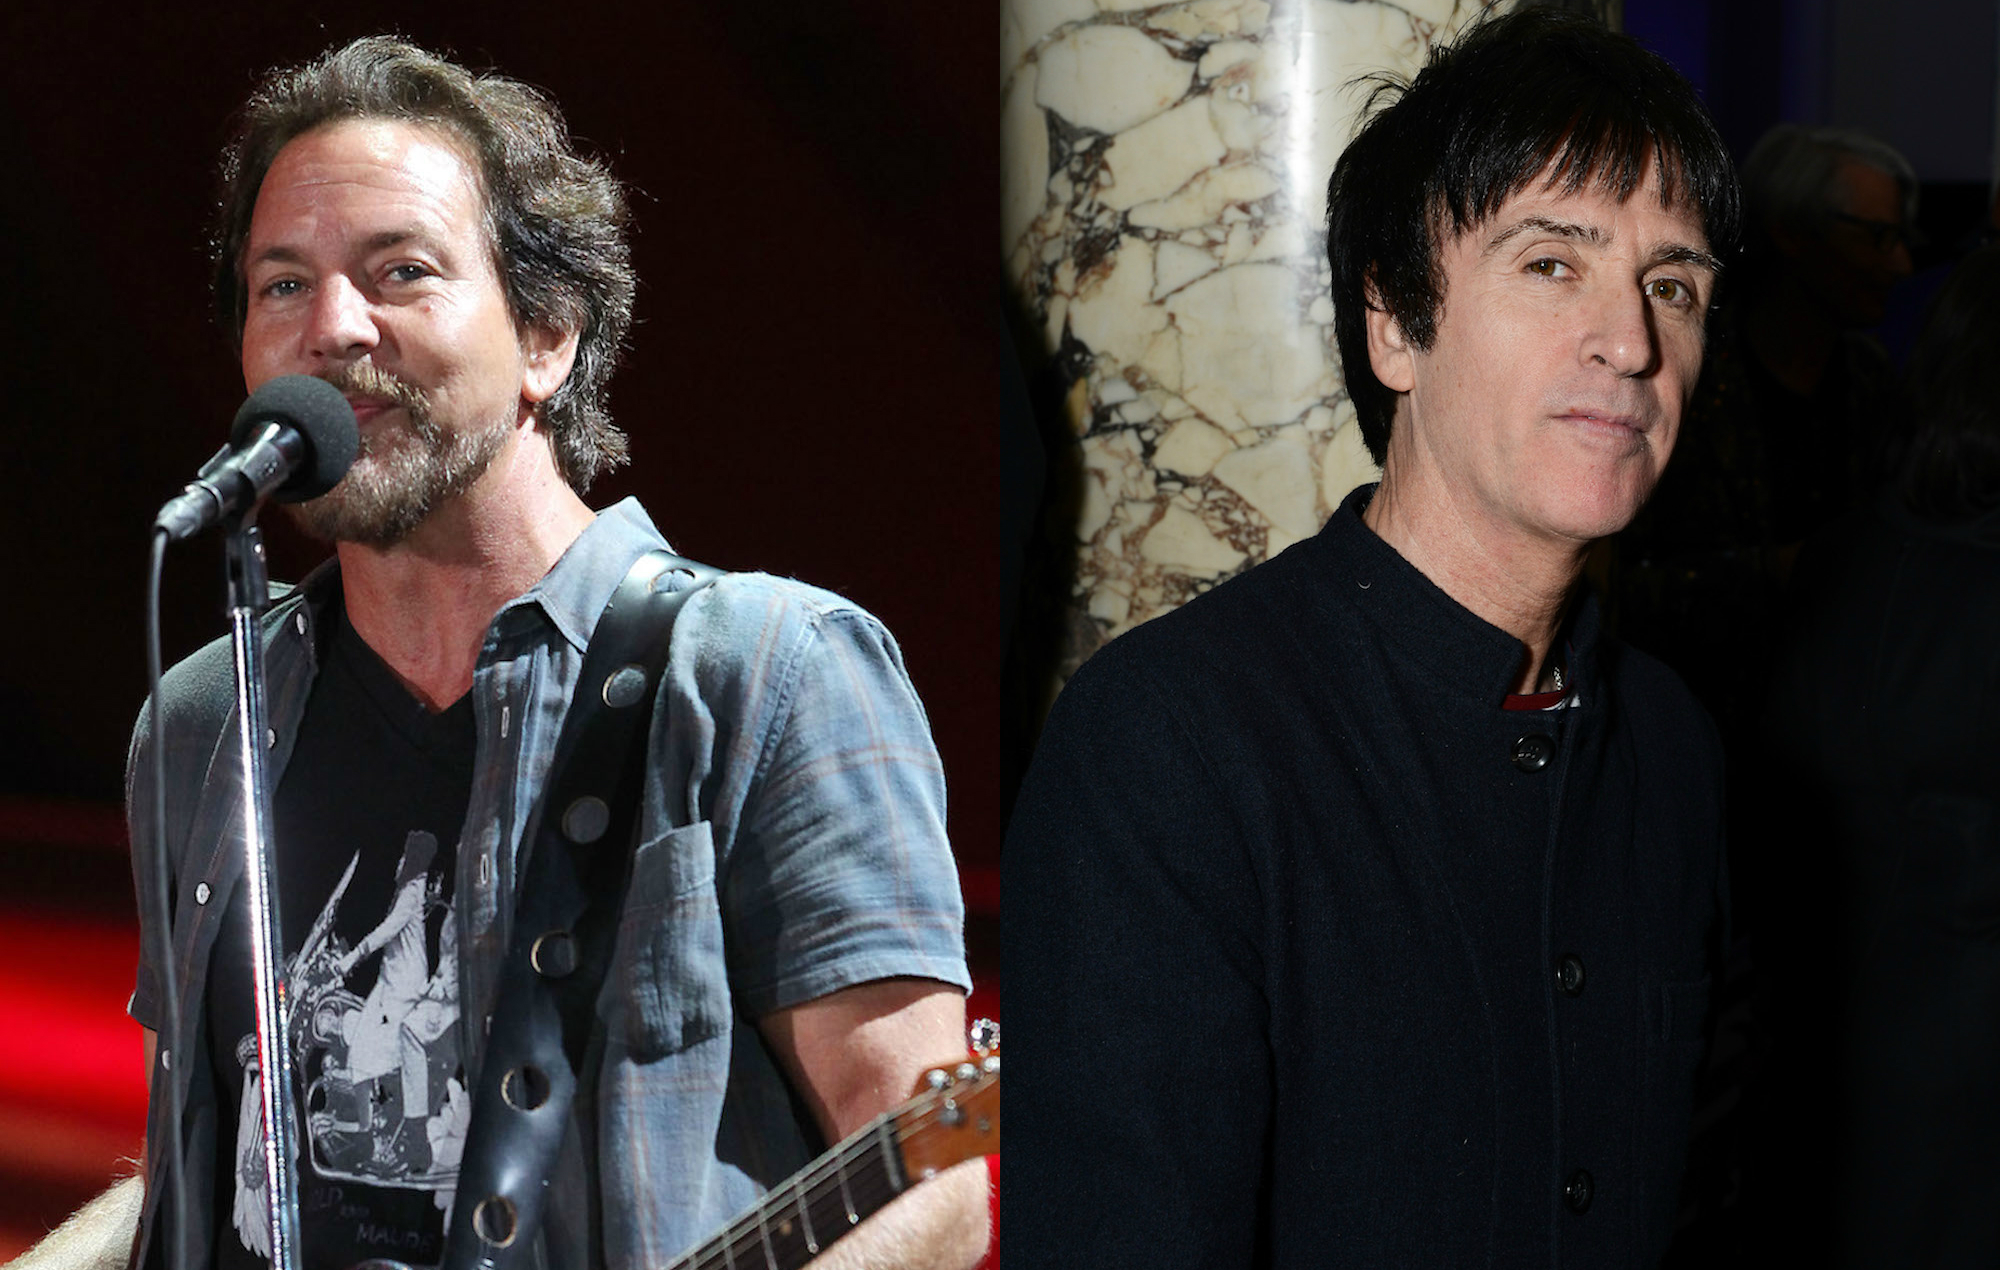 NME Festival blog: Watch Pearl Jam's Eddie Vedder cover The Smiths with Johnny Marr